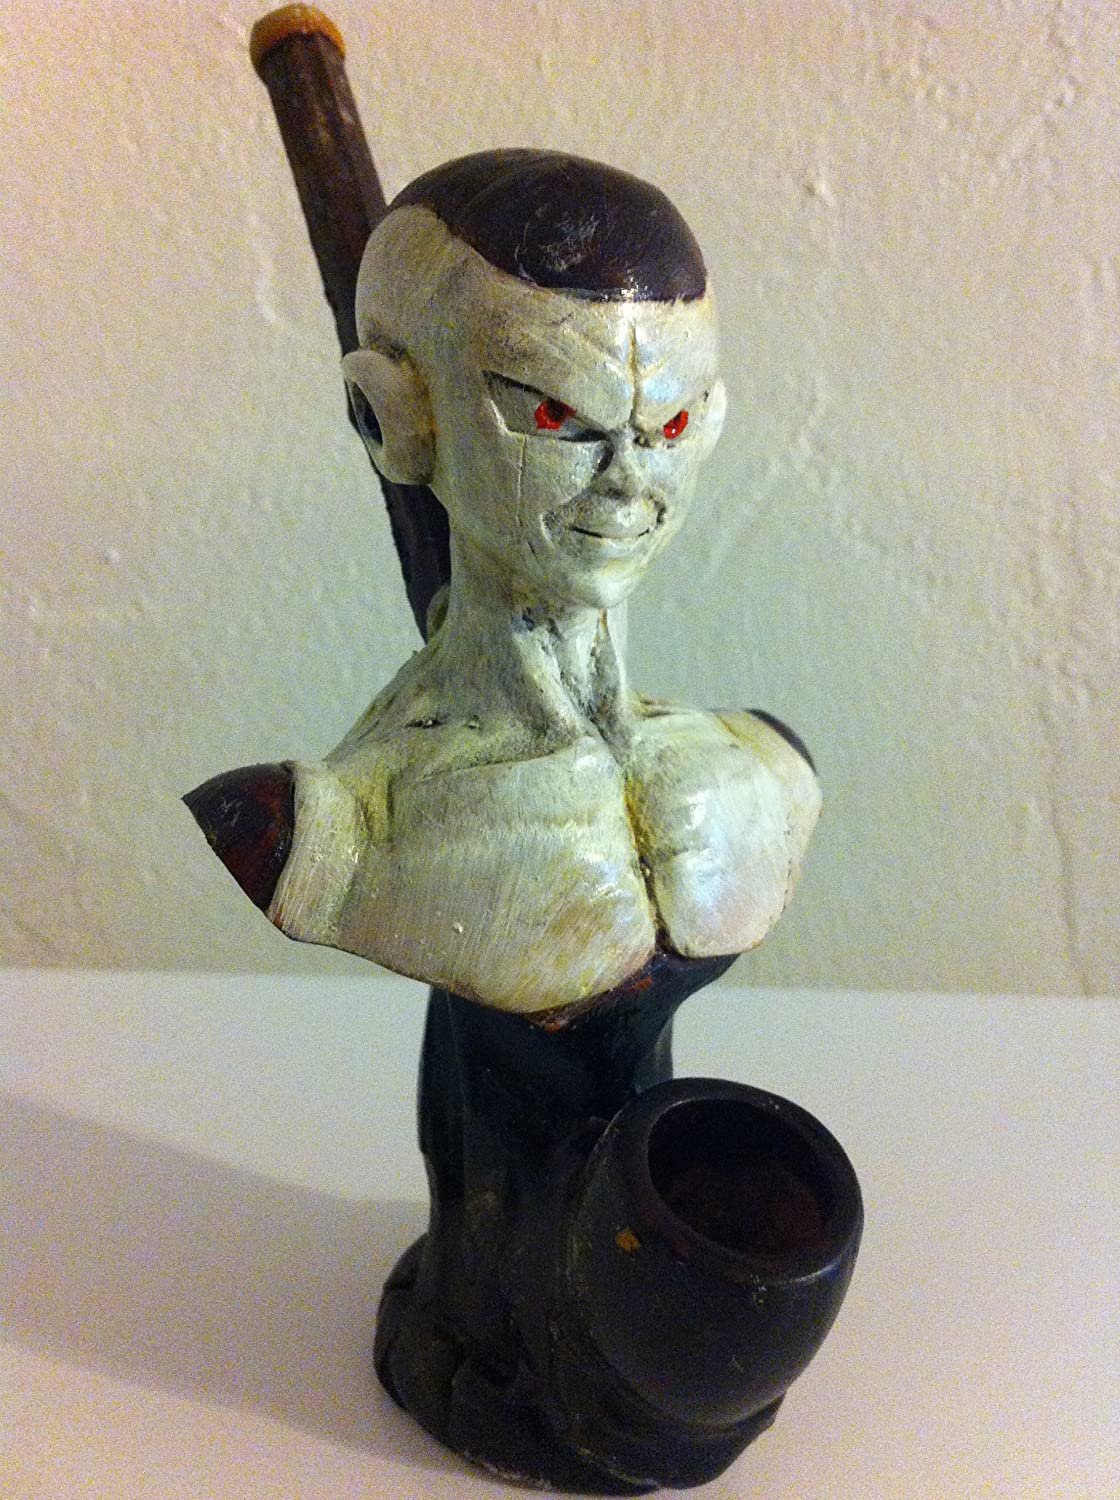 Handmade Tobacco Pipe, Frieza from Dragon Ball Z Design